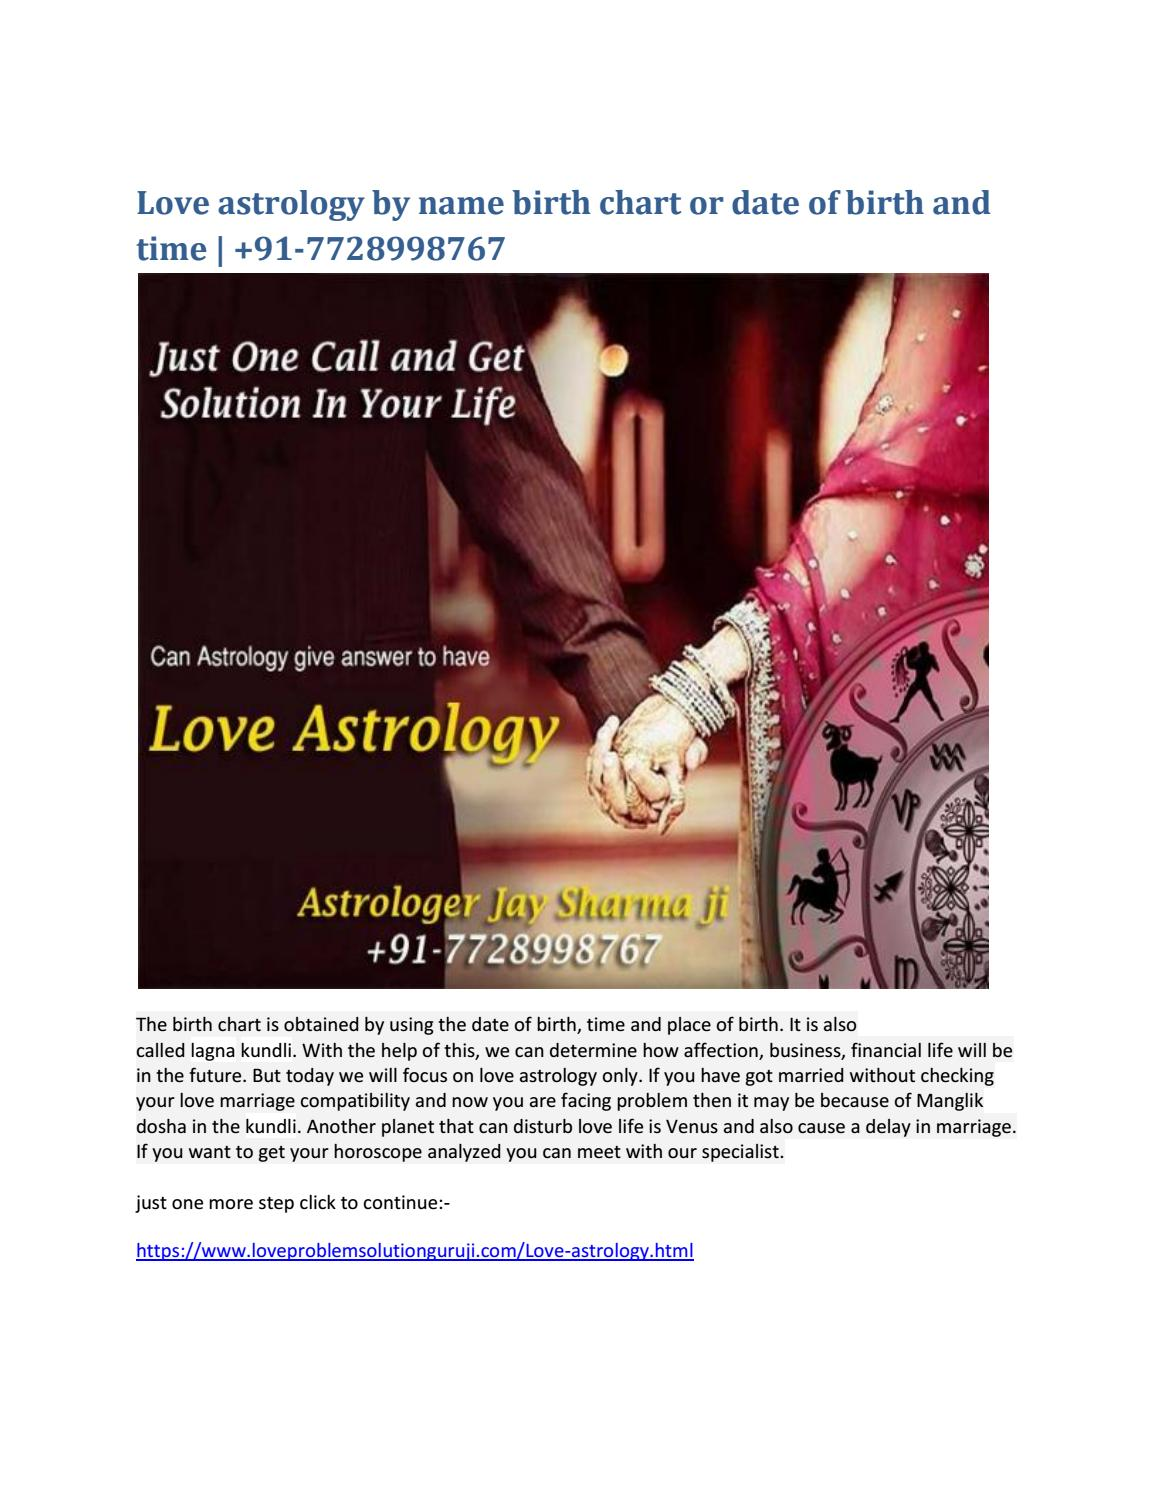 Love astrology by name birth chart or date of birth and time